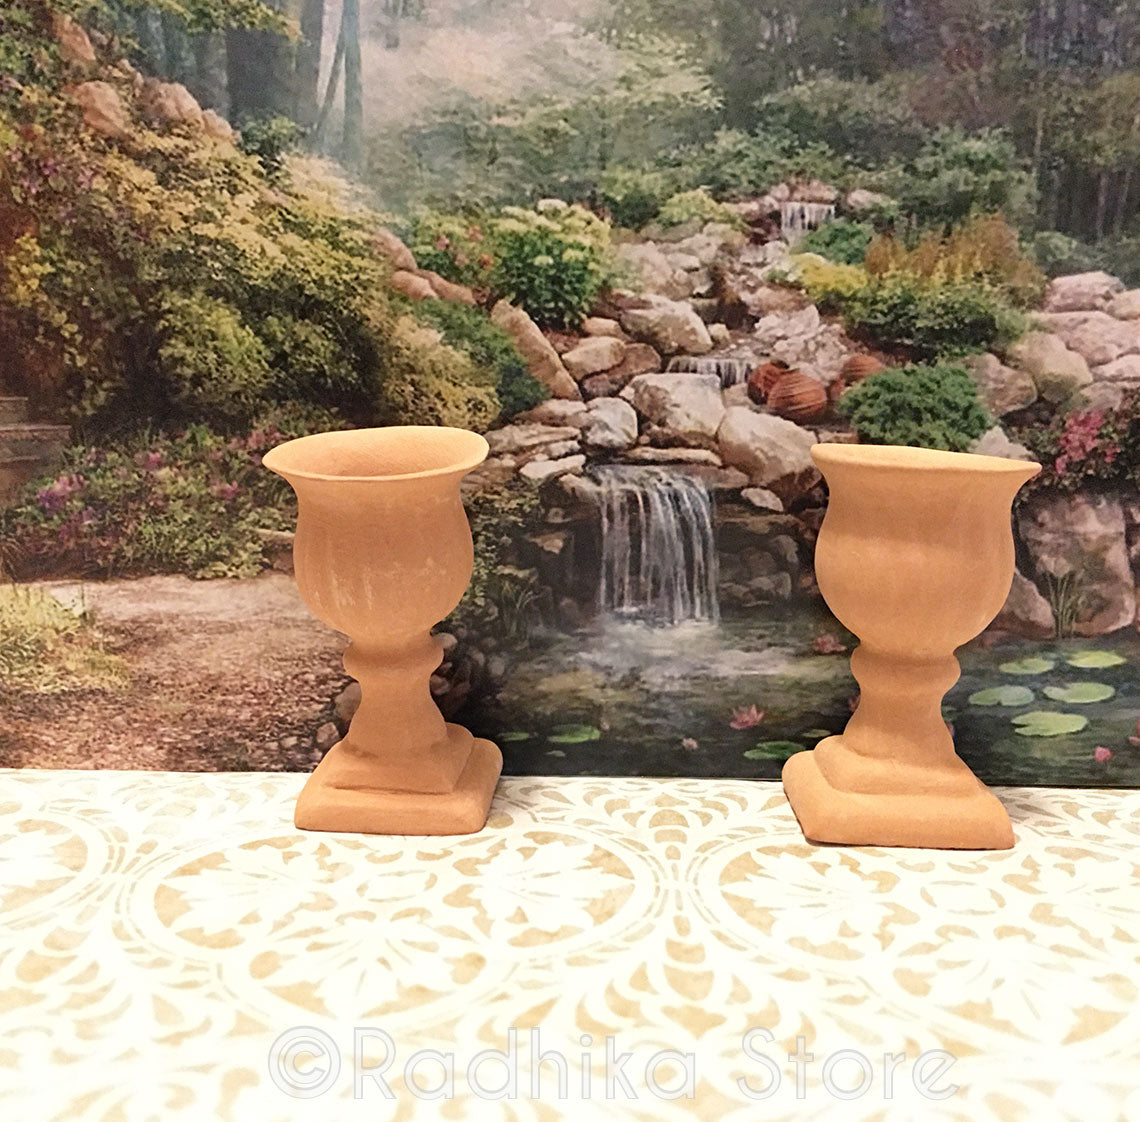 Miniature Decorative Clay Pots- Set of 2